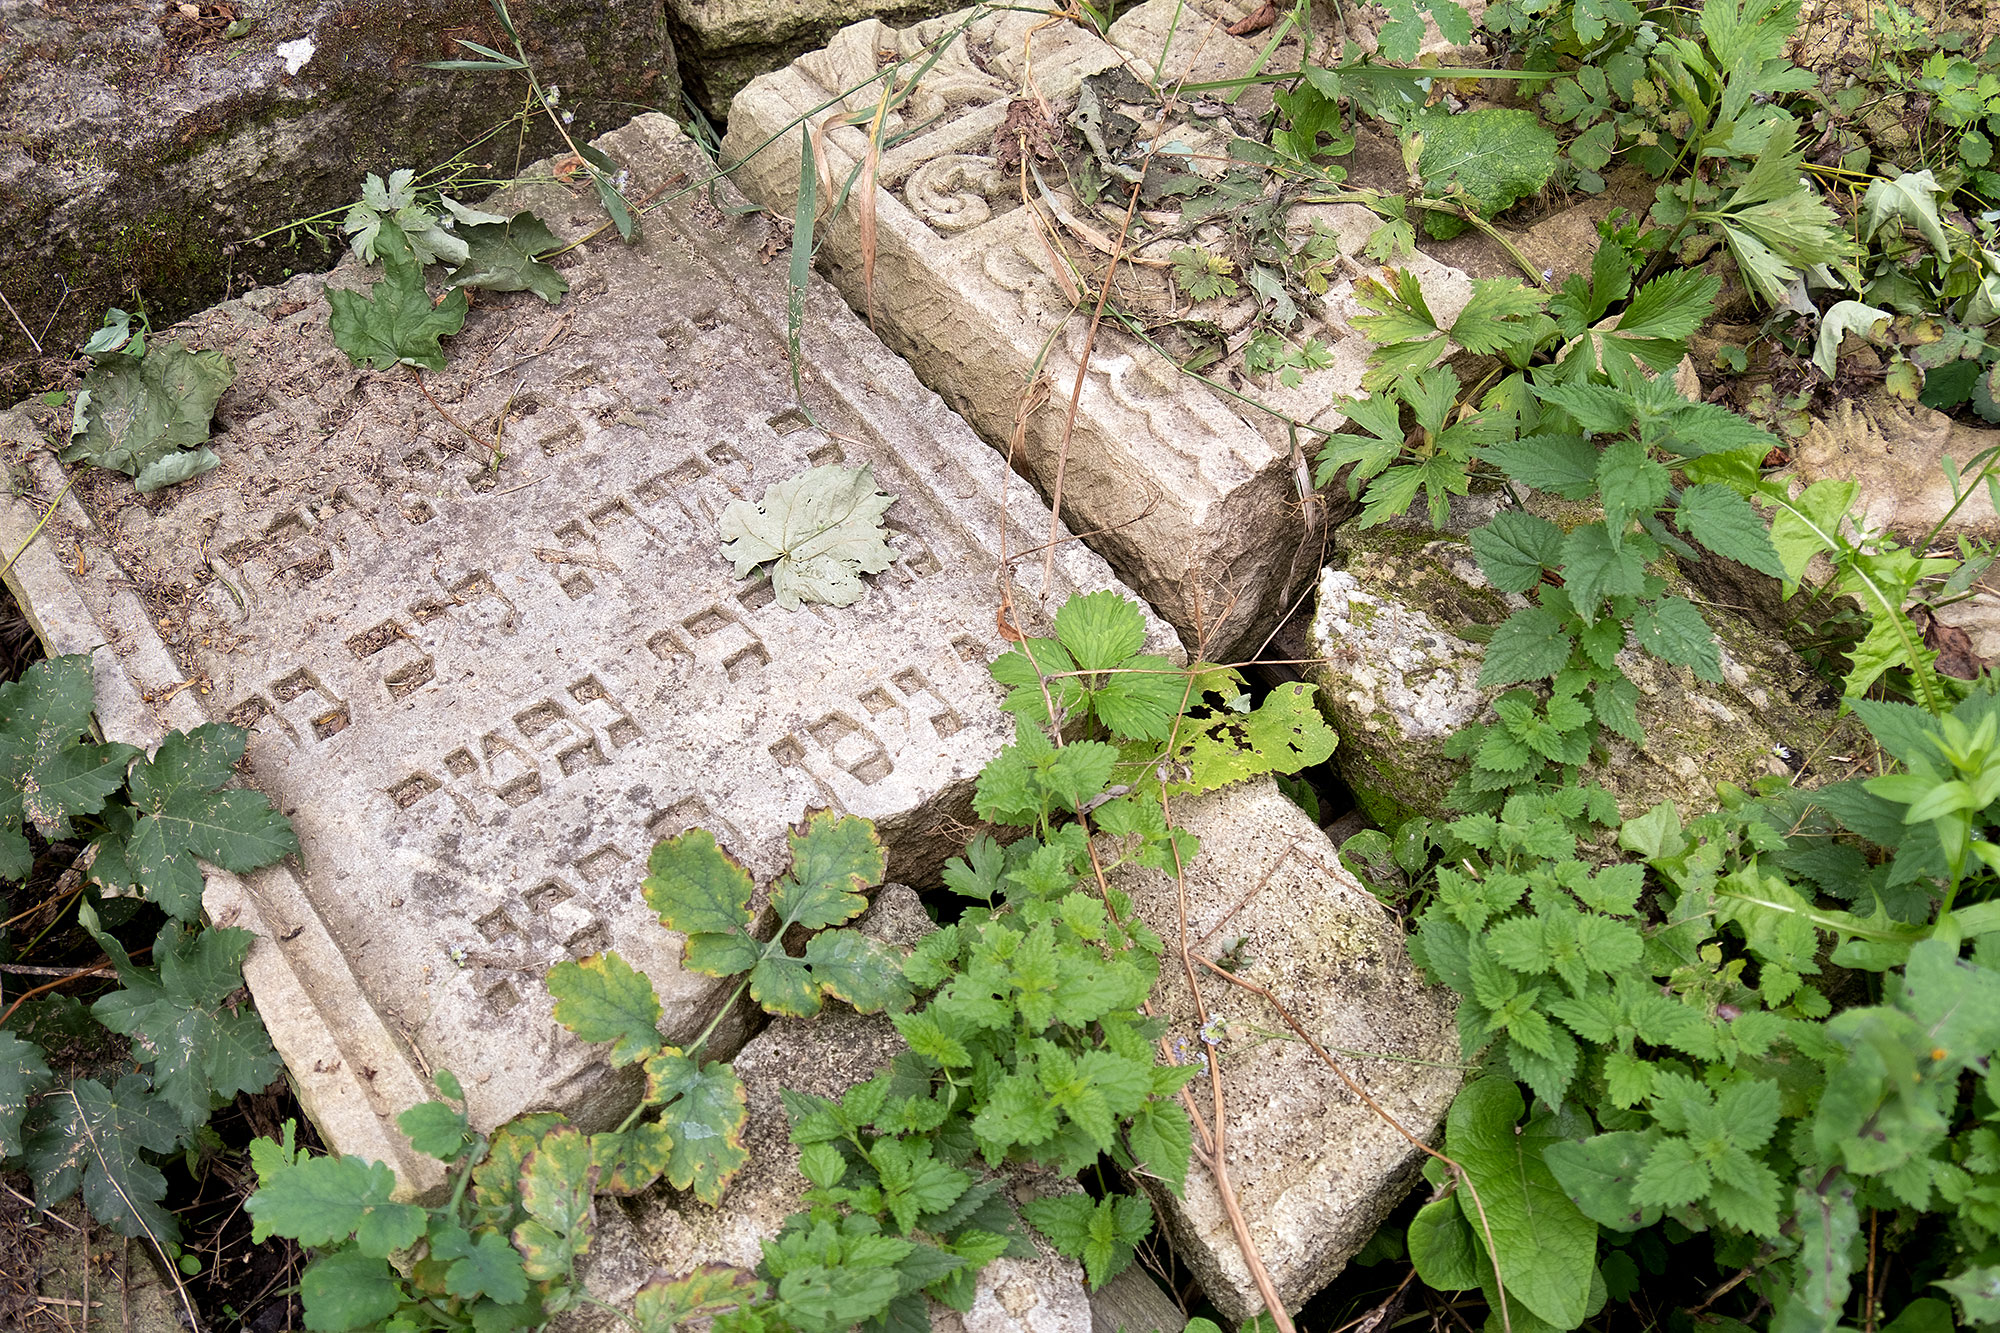 Husiatyn - tombstones from the destroyed Jewish cemetery